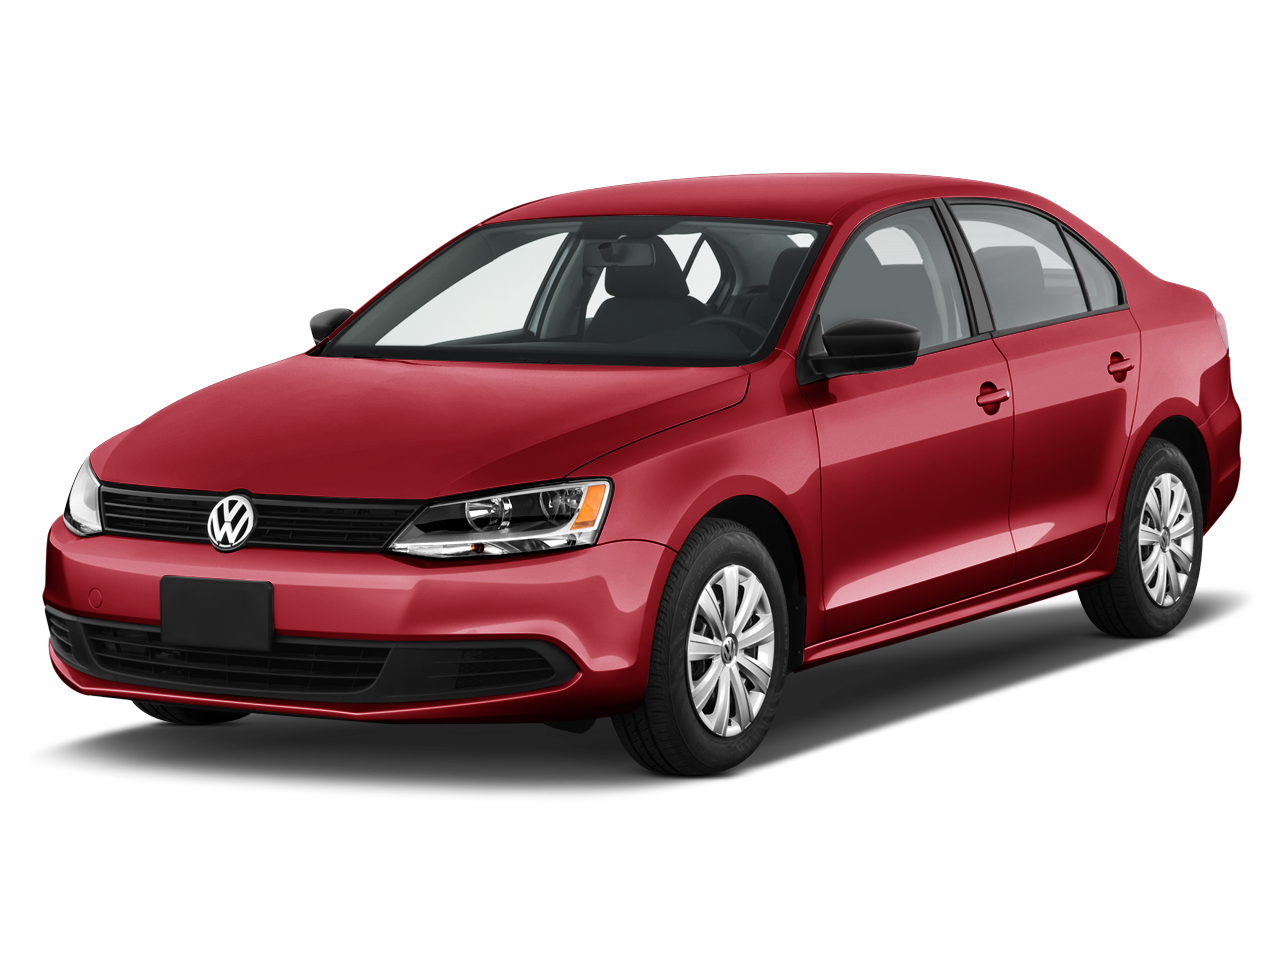 used 2014 volkswagen jetta hybrid for sale pricing autos post. Black Bedroom Furniture Sets. Home Design Ideas